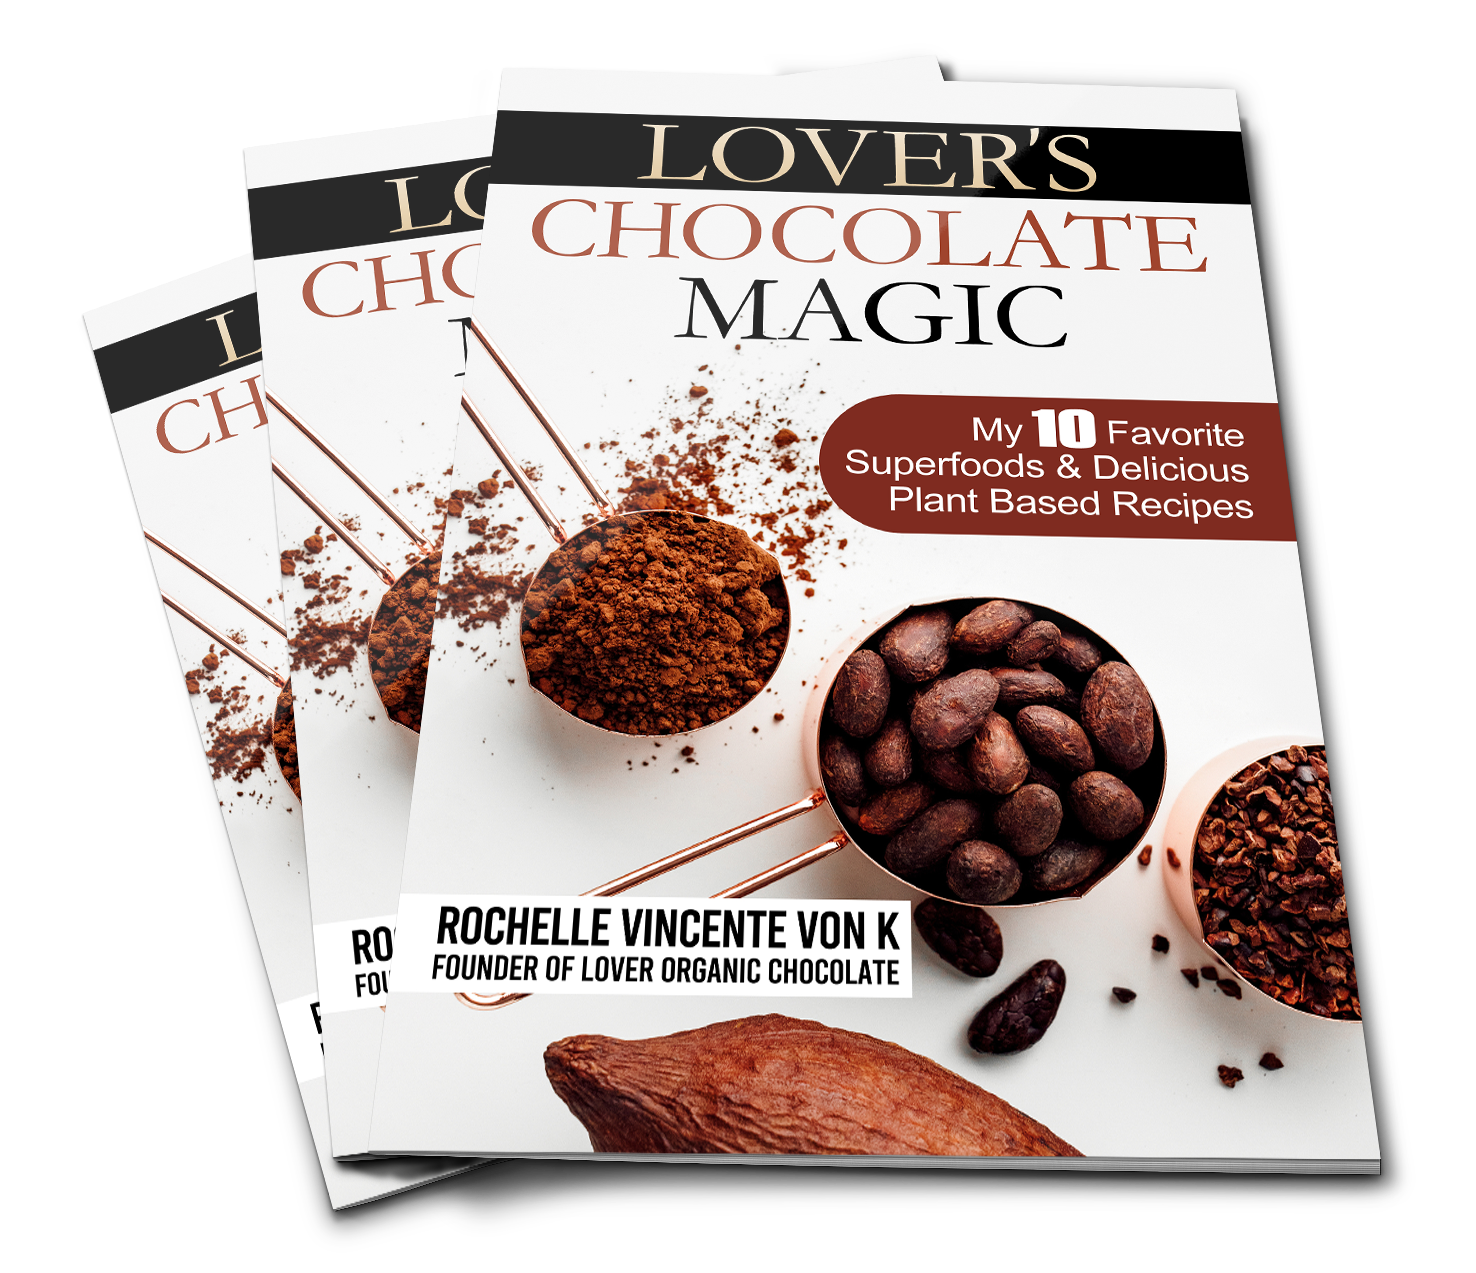 Lover's Chocolate Magic: My 10 Favorite Superfoods & Delicious Plant Based Recipes